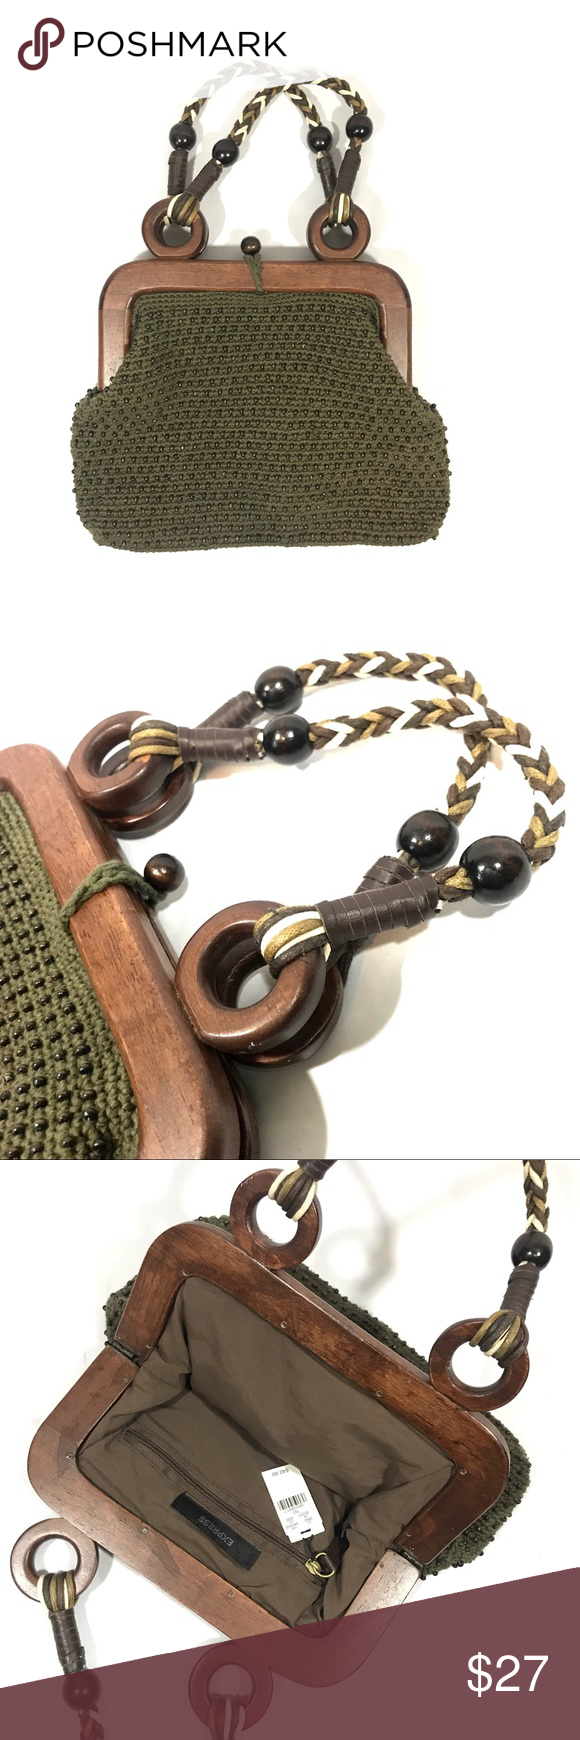 "NWT EXPRESS Beaded Green Cloth Tote Bag Wood Frame NWT - new with tags Never used   Olive / army green woven Express bag with brown wooden beads, braided handle and wooden hinge frame   Loop and button closure  1 interior zip pocket  Fully lined   H 8.5"" W 11"" Express Bags Totes #woodentotebag"